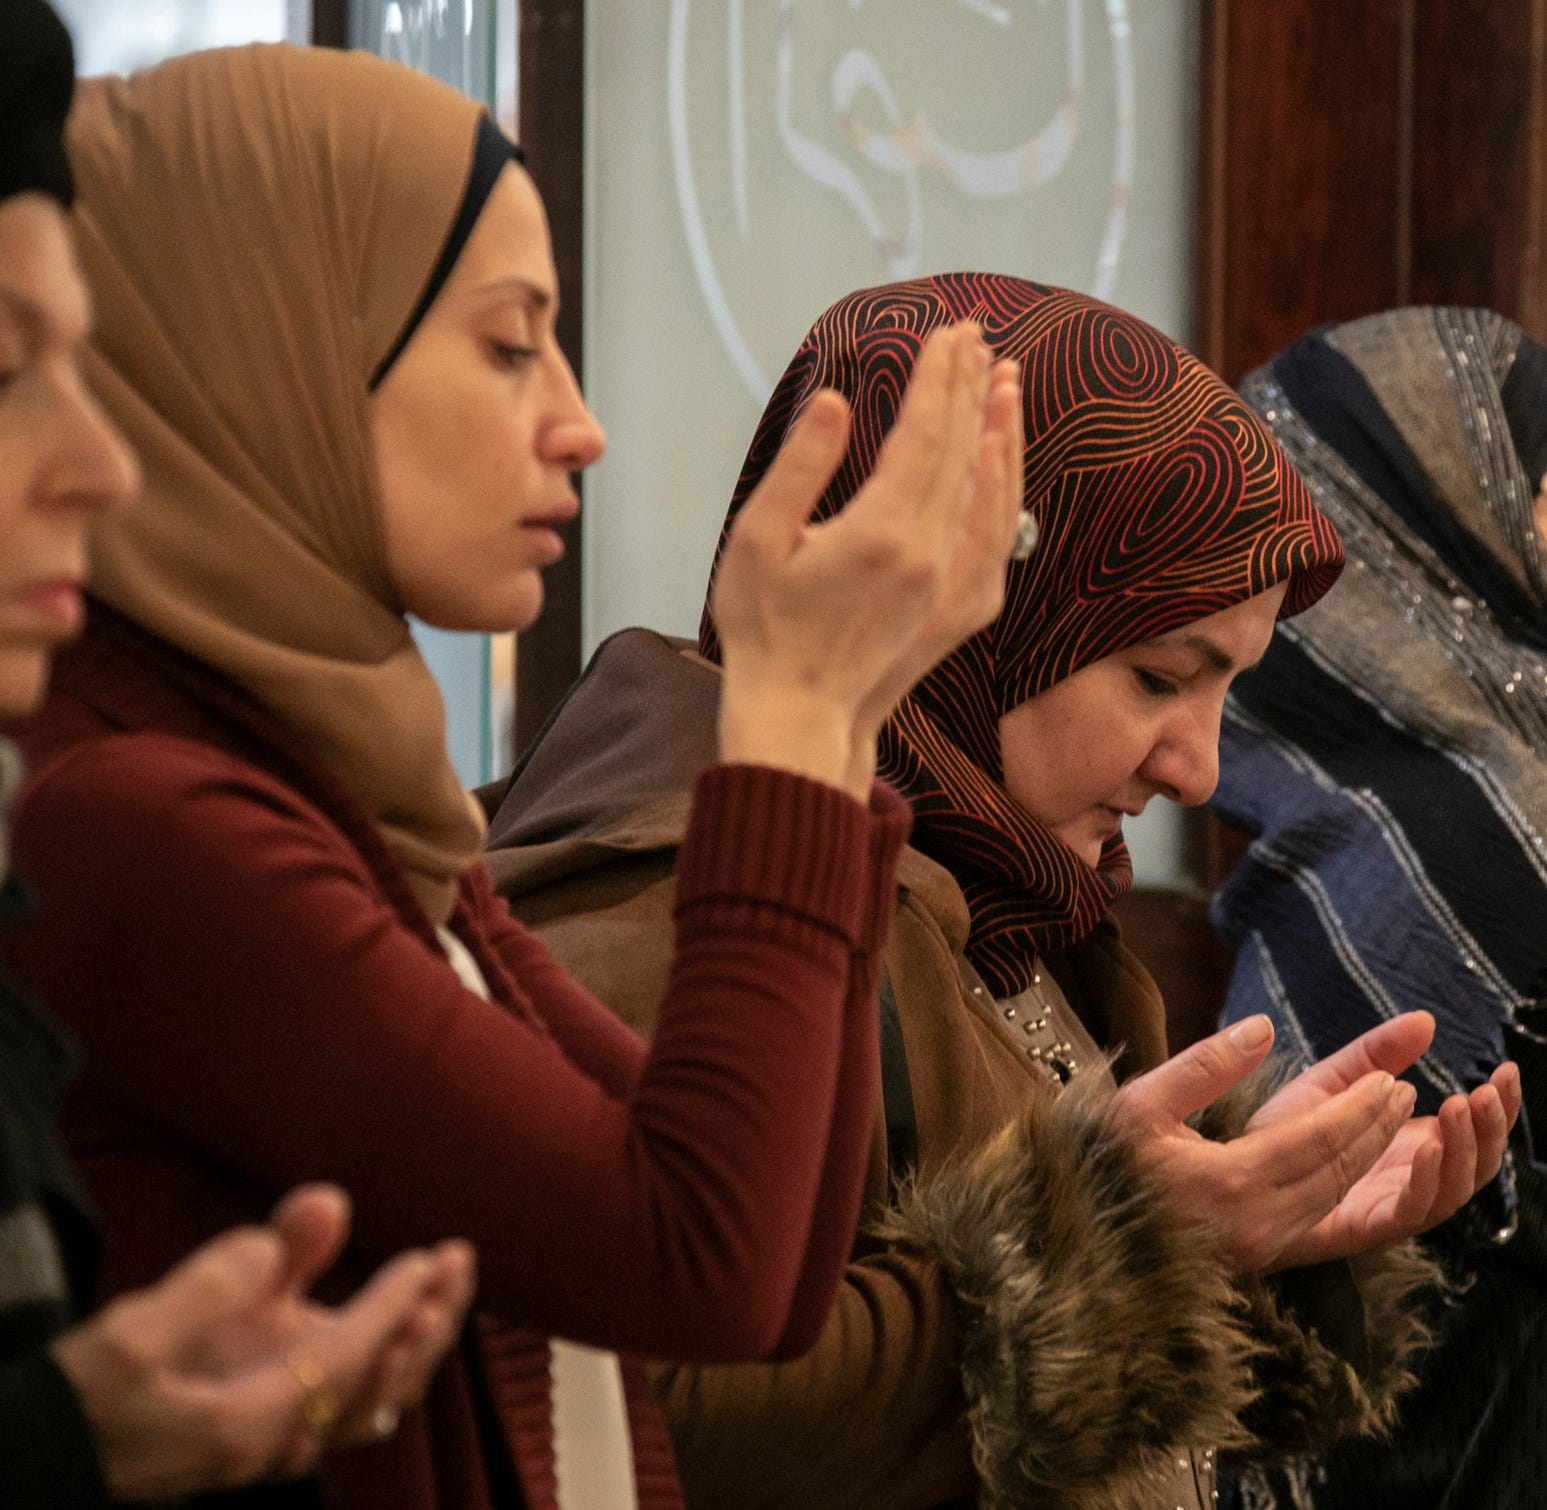 Muslims in metro Detroit anxious but determined after New Zealand attack